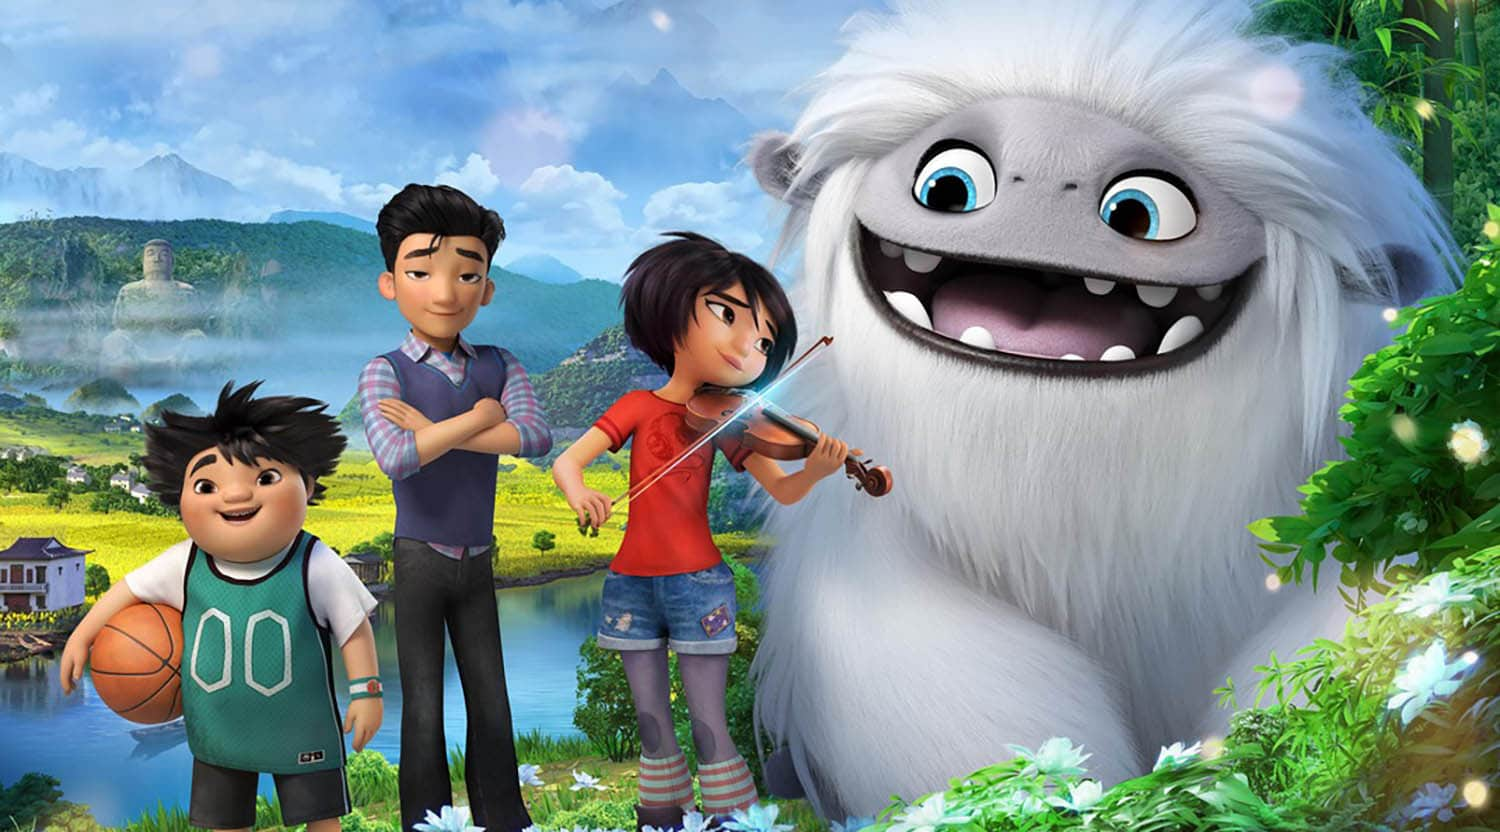 Abominable sort enfin en France